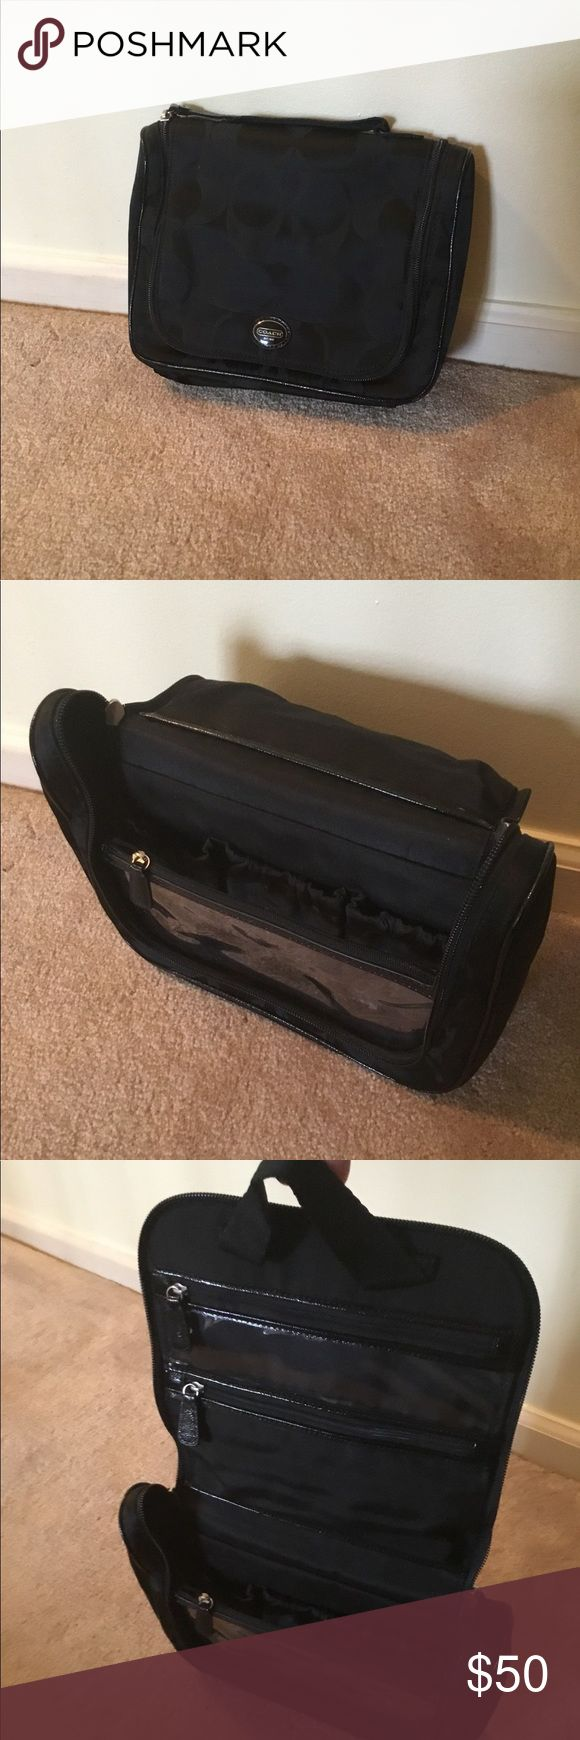 Signature Nylon Travel Cosemtic Black cosmetic toiletry bag - has a loop to hang on hook or door, multiple storage pockets, great for travel.  This goes great with the 2 nylon bags that are listed 😁 Coach Bags Travel Bags